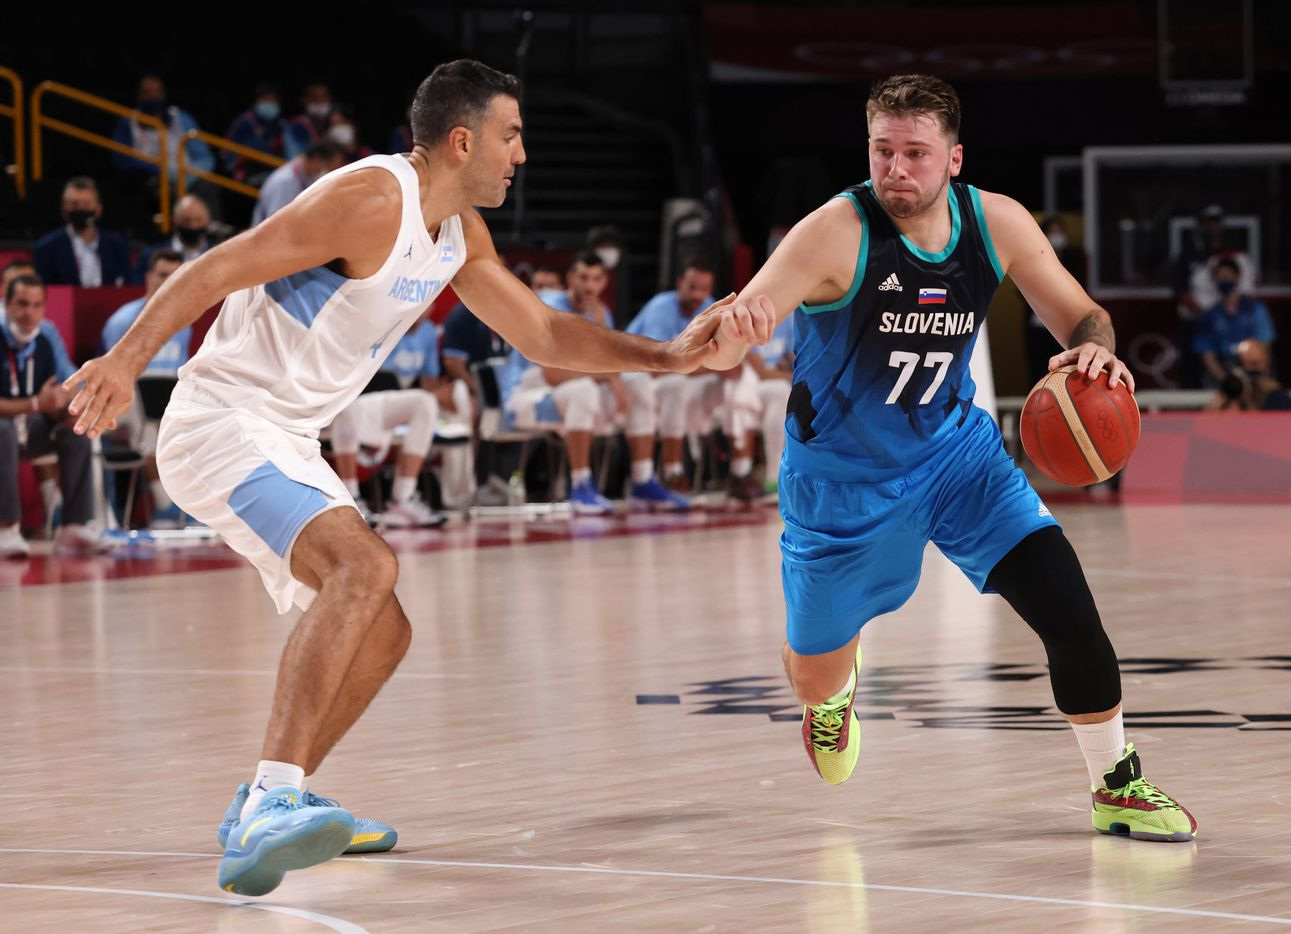 Slovenia's Luka Doncic (77) drives on Argentina's Luis Scola (4) in the first half of play during the postponed 2020 Tokyo Olympics at Saitama Super Arena on Monday, July 26, 2021, in Saitama, Japan. Slovenia defeated Argentina 118-100. (Vernon Bryant/The Dallas Morning News)